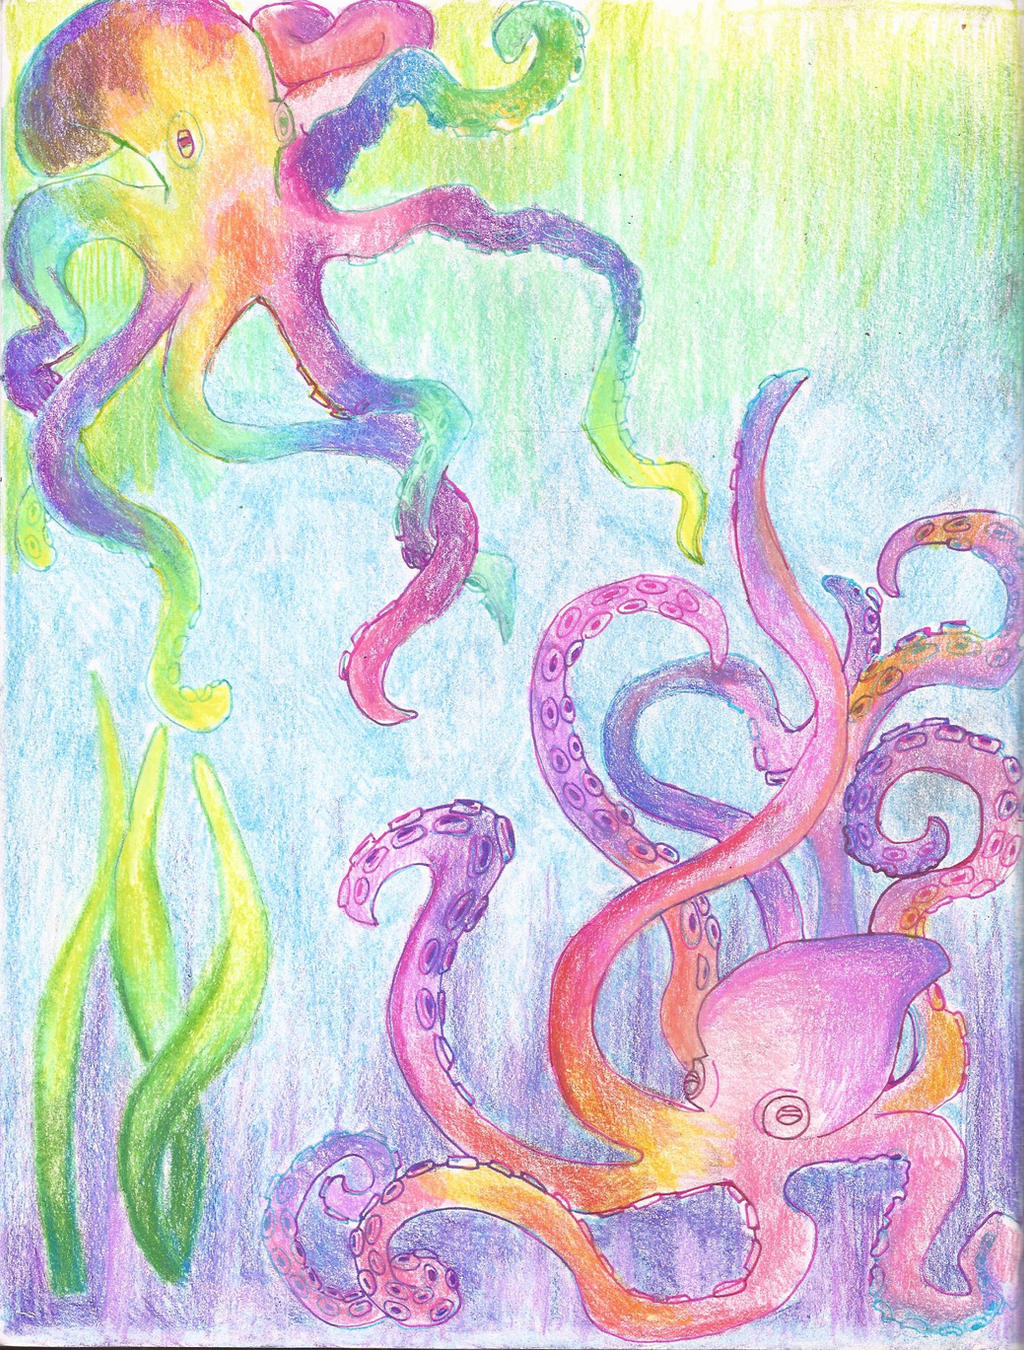 Colorful octopus by calliopecloudcat on deviantart for Colorful octopus painting